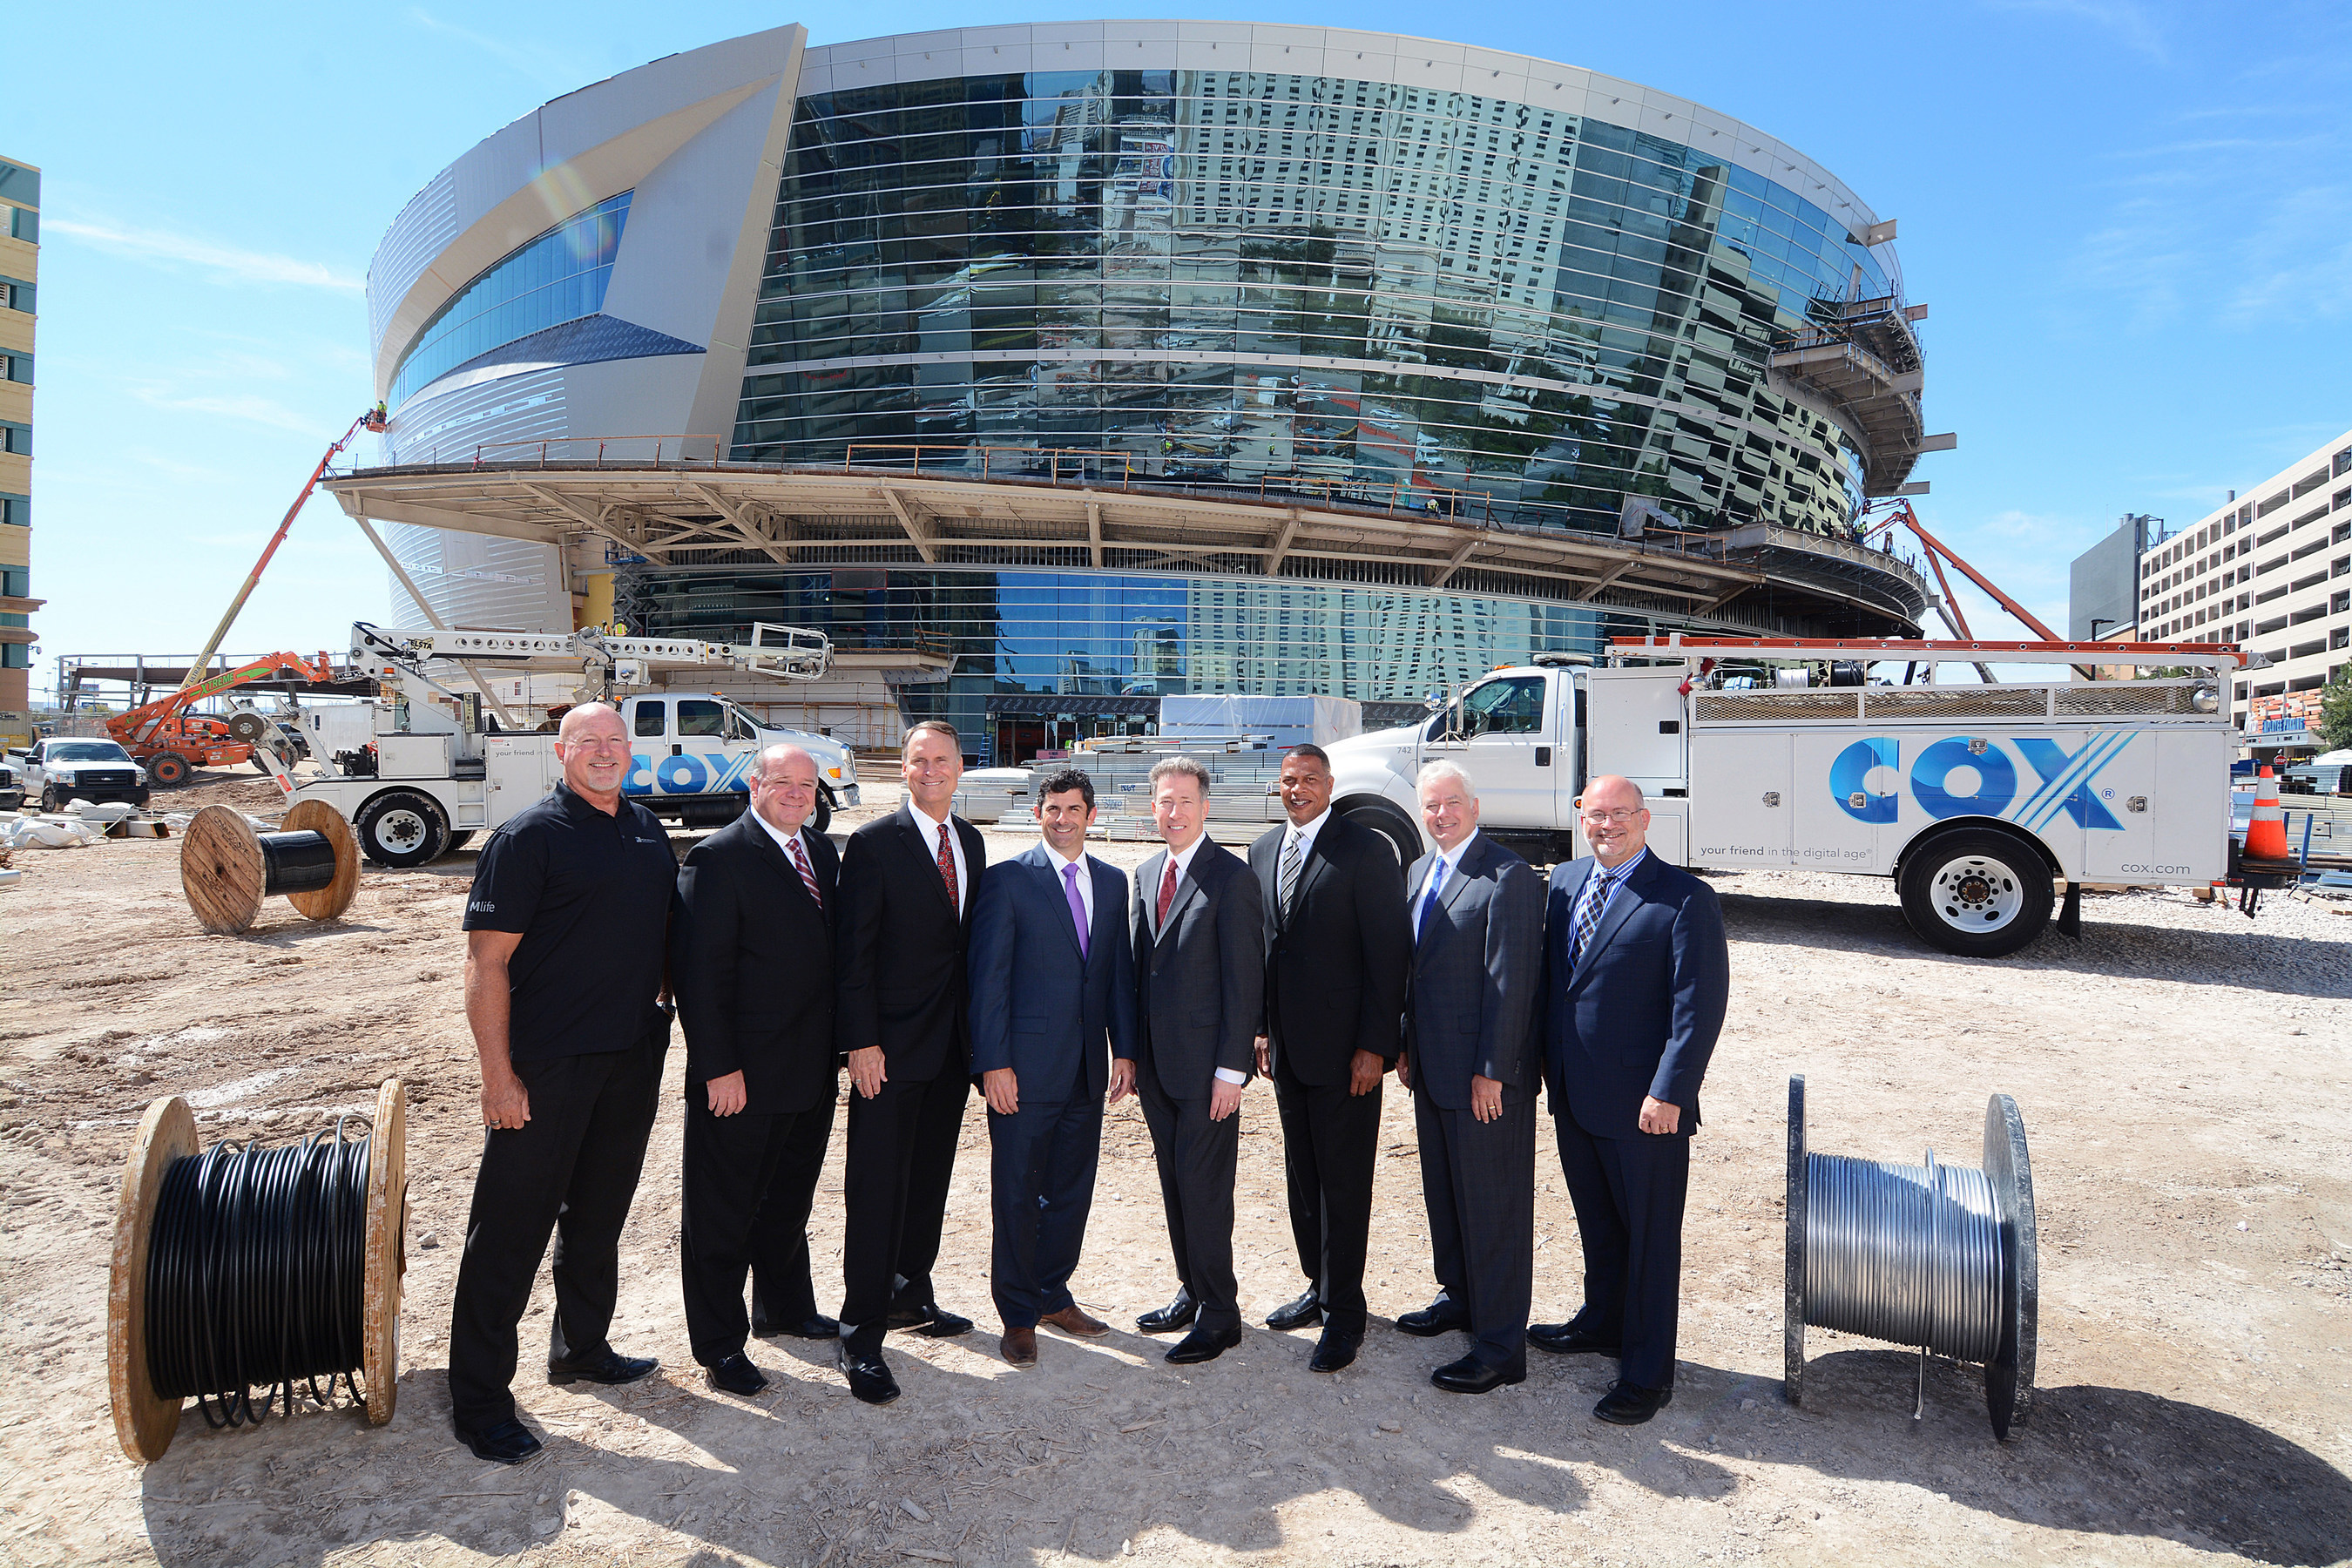 Posing in front of the Las Vegas Arena are from left Mark Prows, senior vice president, Arenas, MGM Resorts International; Steve Rowley, senior vice president, Cox Business; Mark Faber, senior vice president of global partnerships, AEG; Rick Arpin, senior vice president of entertainment and development, MGM Resorts International; Pat Esser, president, Cox Communications; Derrick R. Hill, vice president, Cox Business/Hospitality Network, Las Vegas; Michael F. Bolognini, vice president...